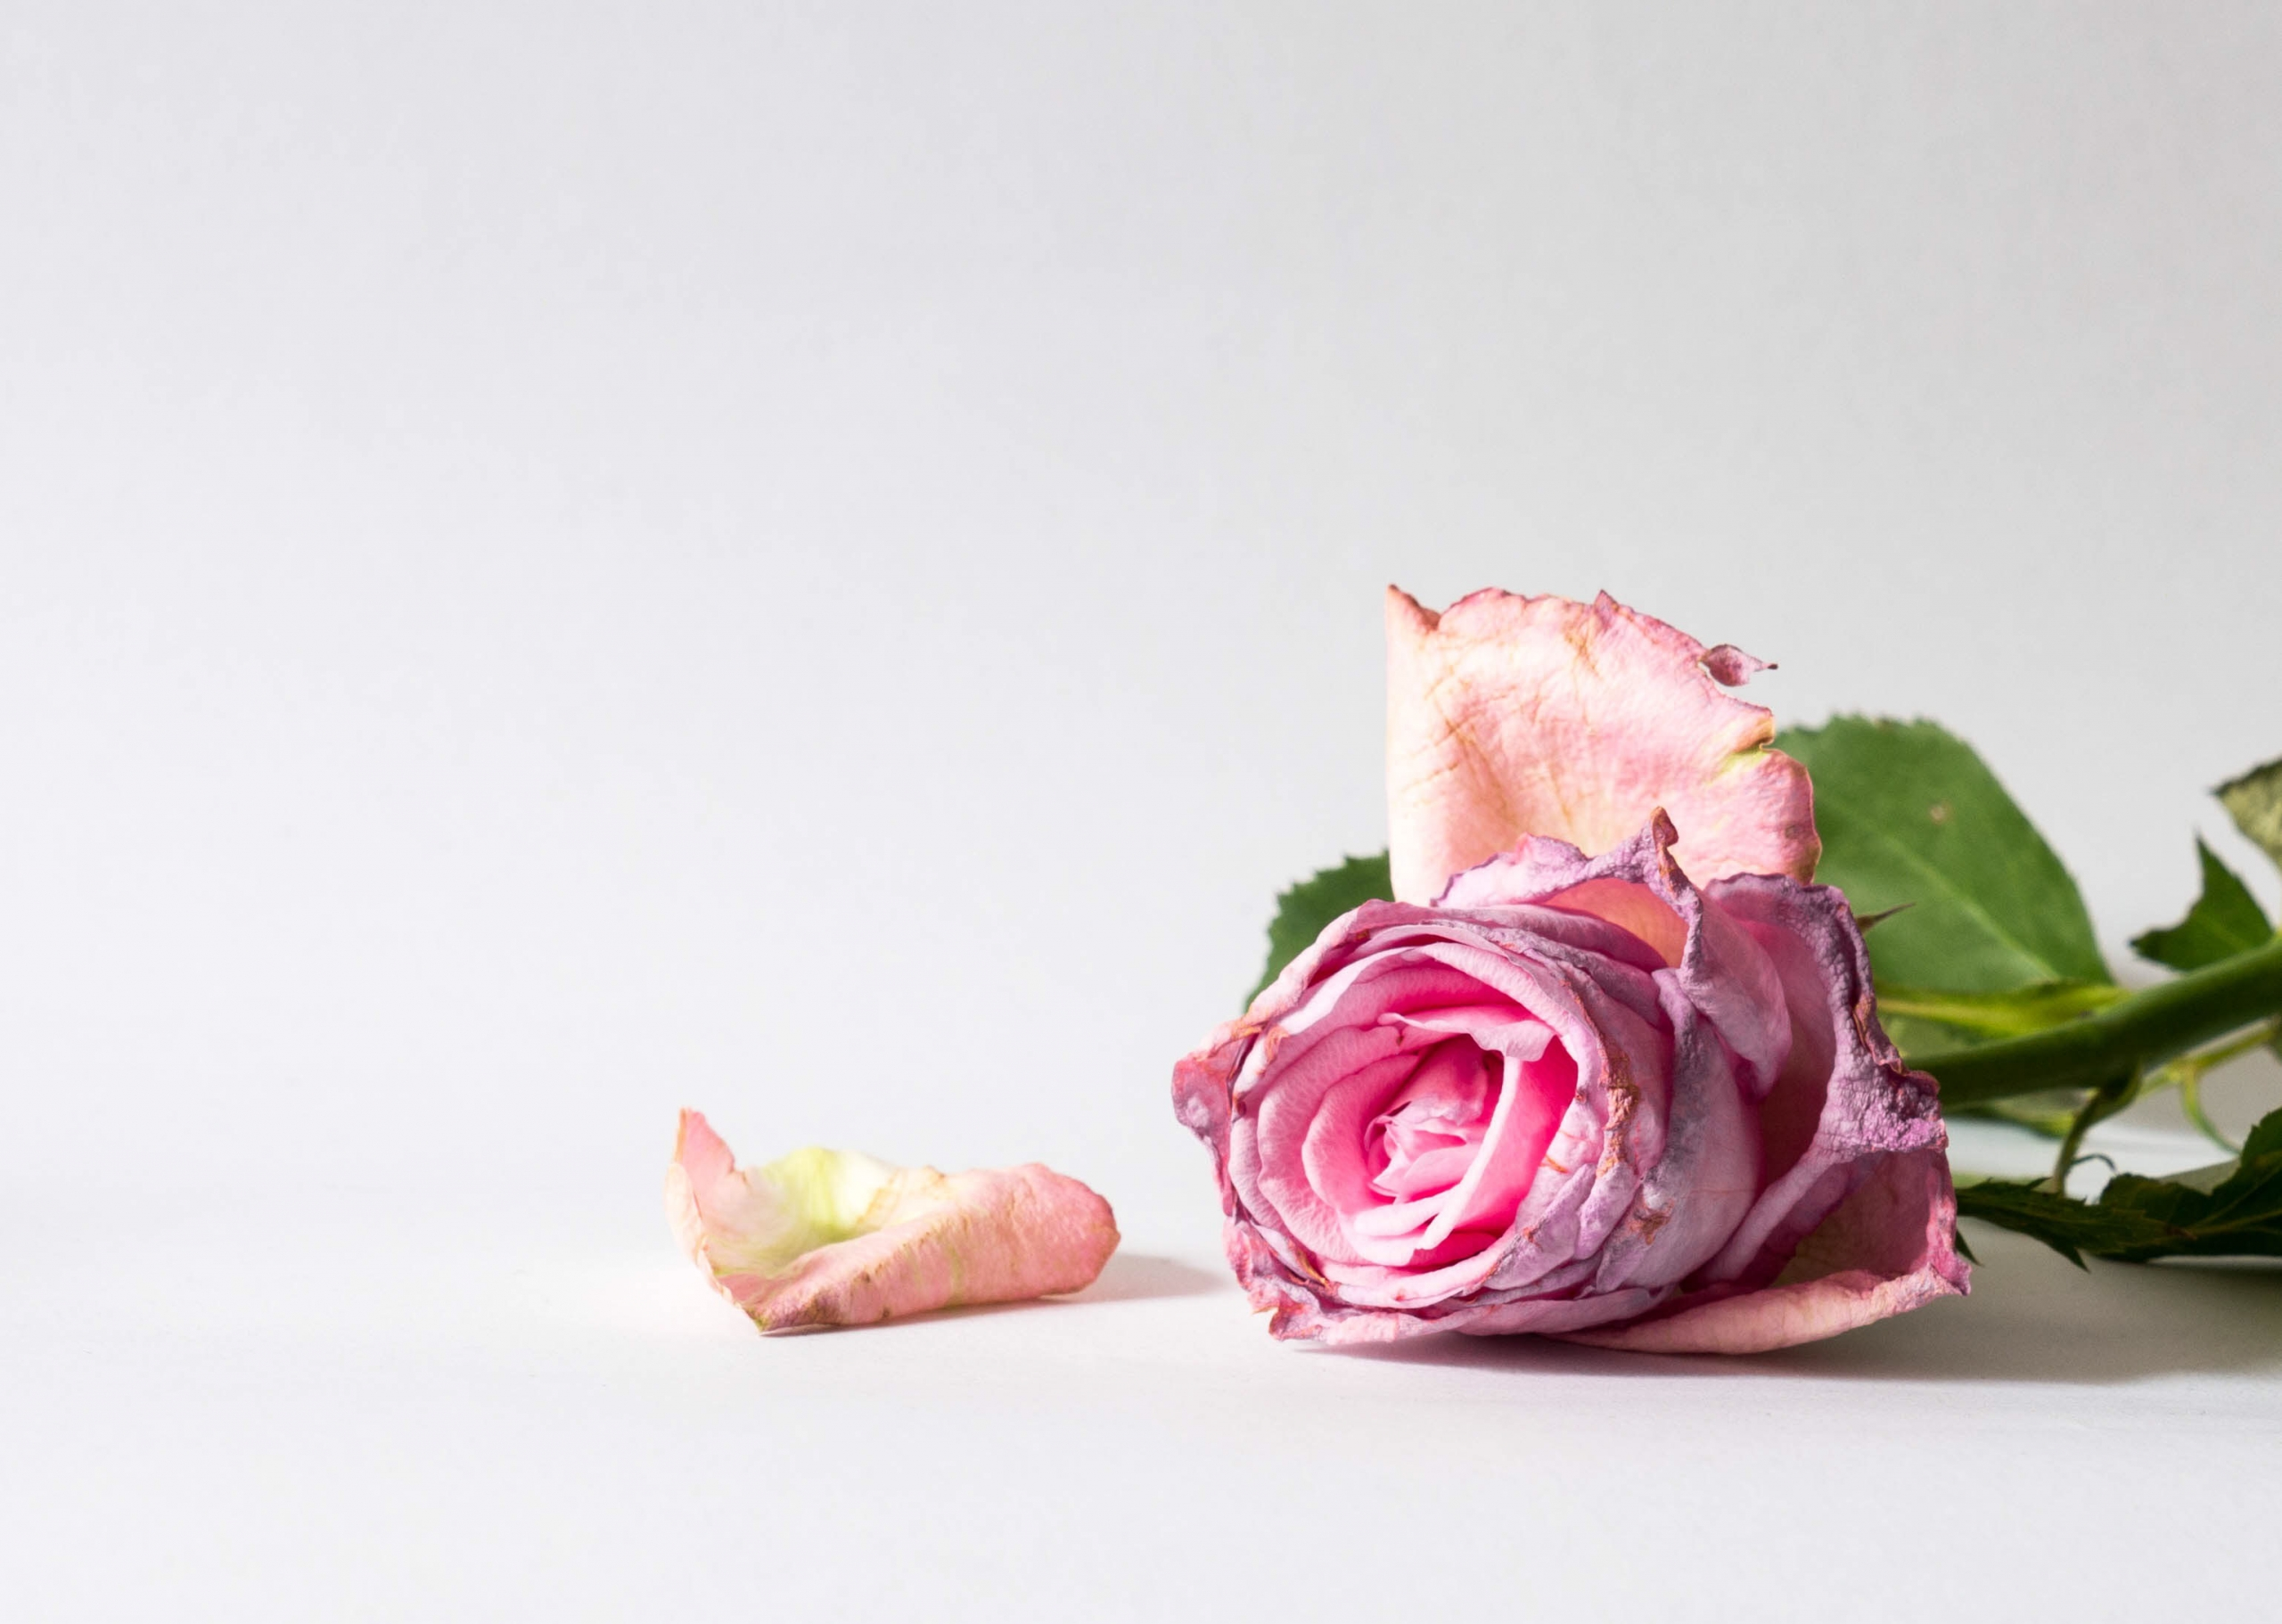 pink-flower-dying-scaled.jpg